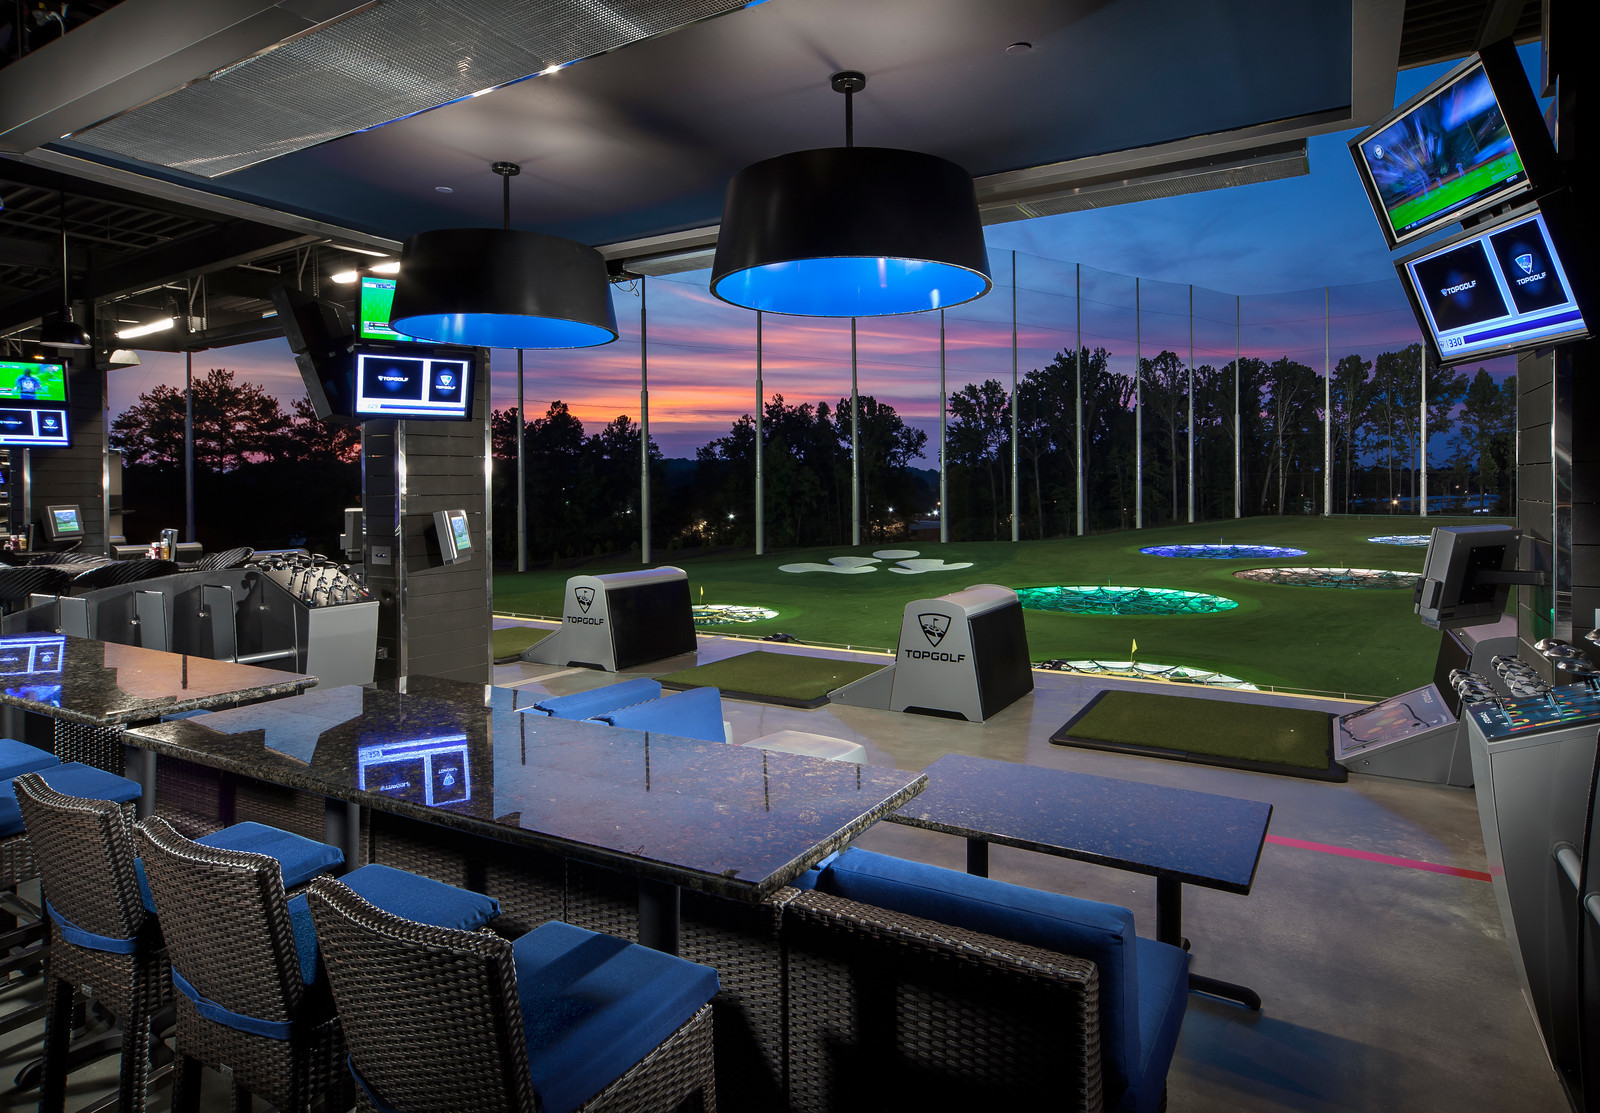 Top Golf Charlotte Opening In June Hiring Has Already